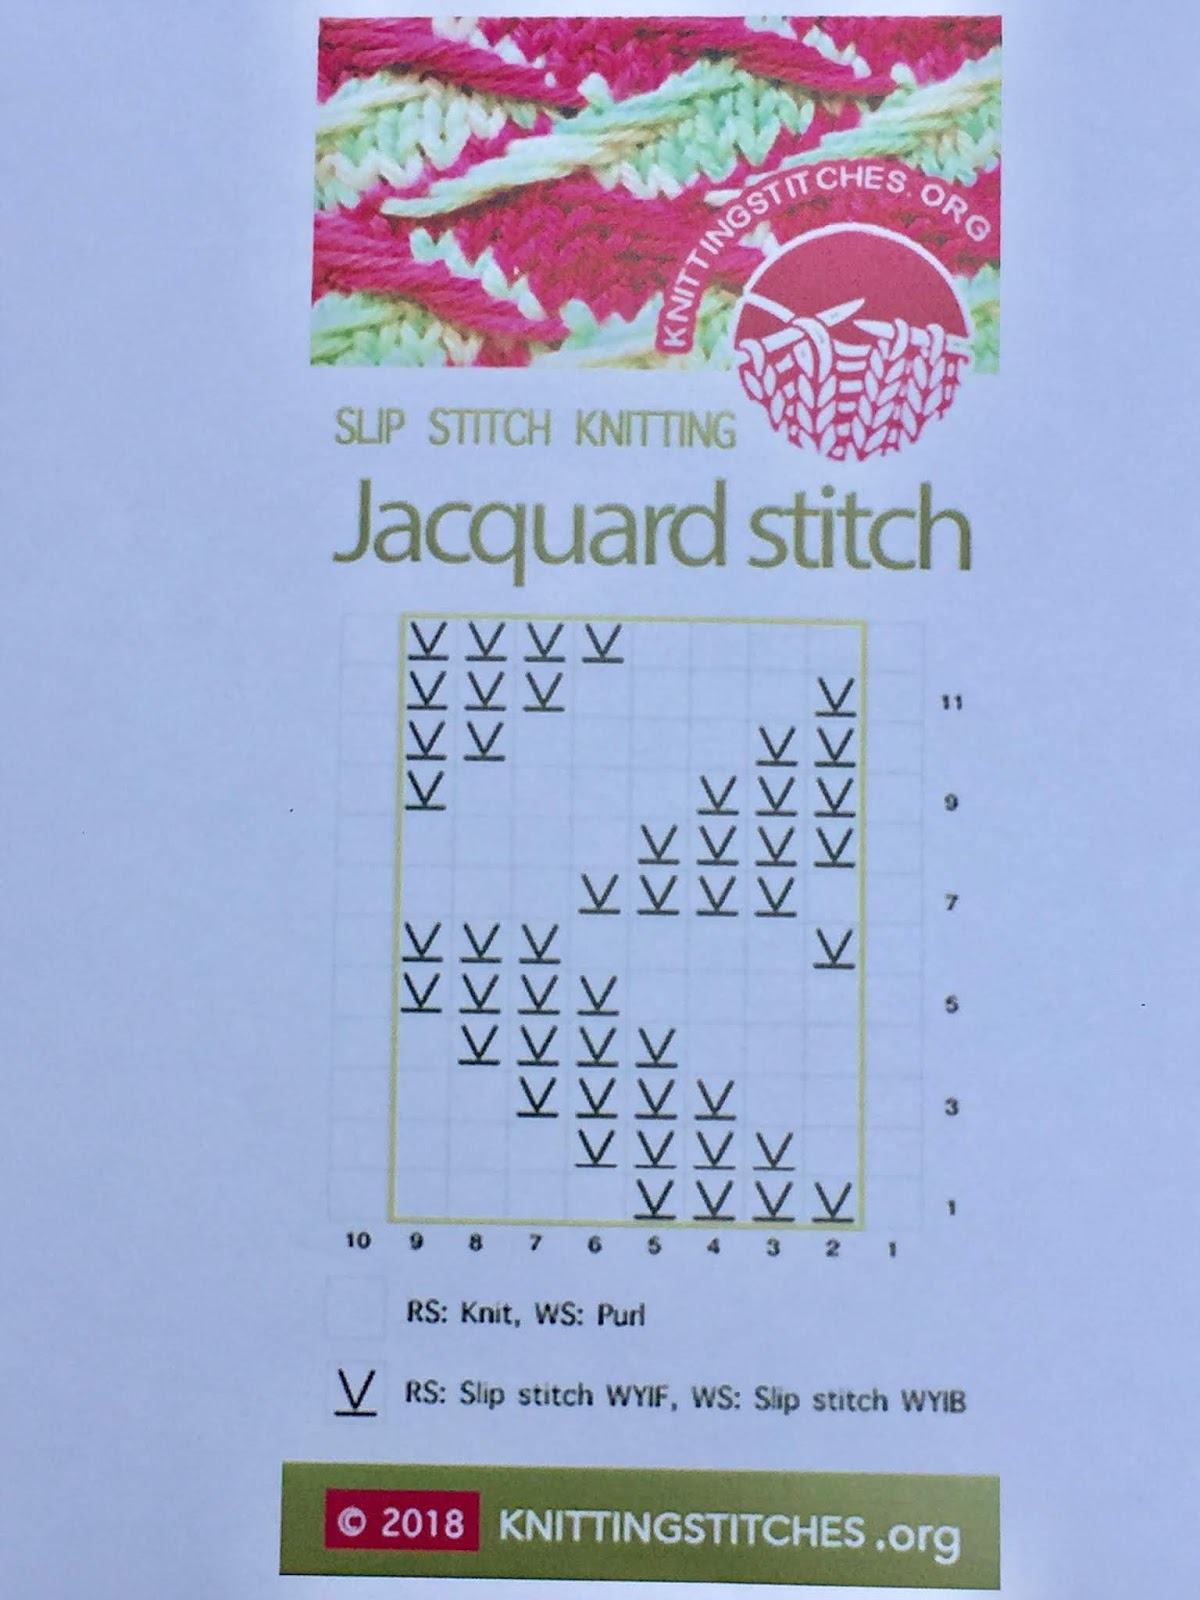 Knitting Stitches 2018 - Zig Zag Jacquard free pattern